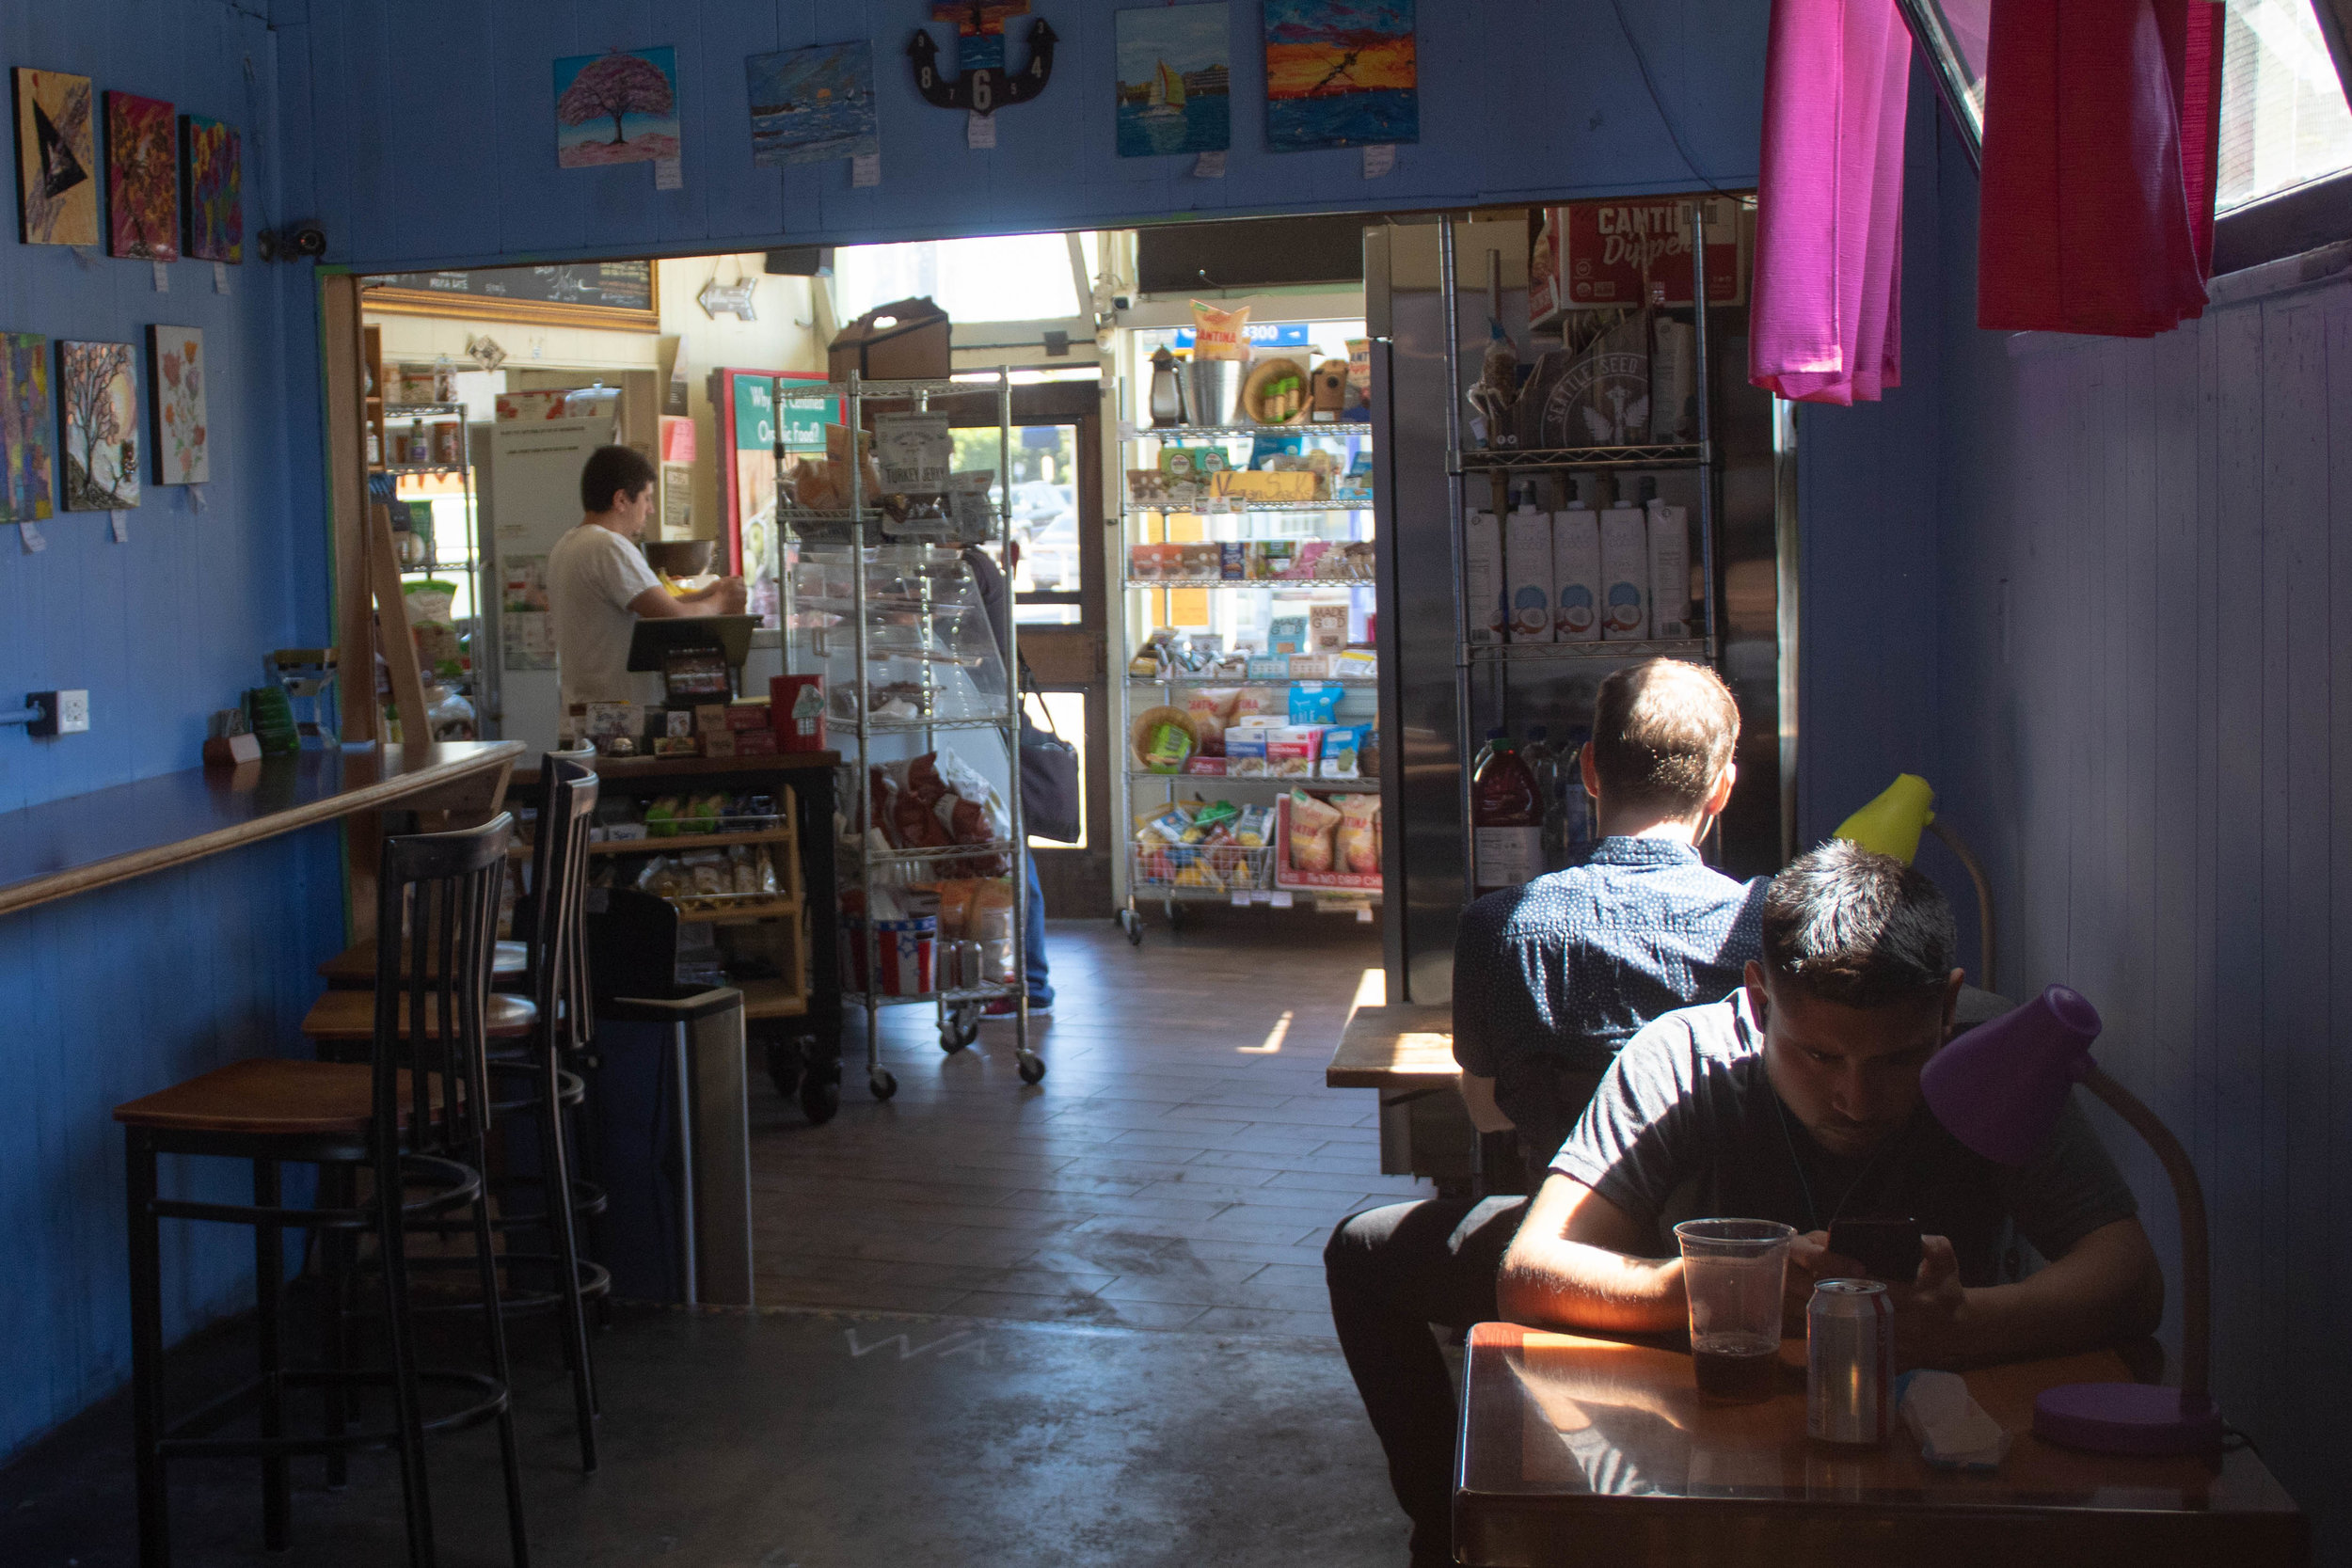 At around 2:30 in the afternoon, UnUrban Coffee House is nearly empty and mostly quiet if not for the white noise of cars breezing down Pico Blvd in Santa Monica, California on